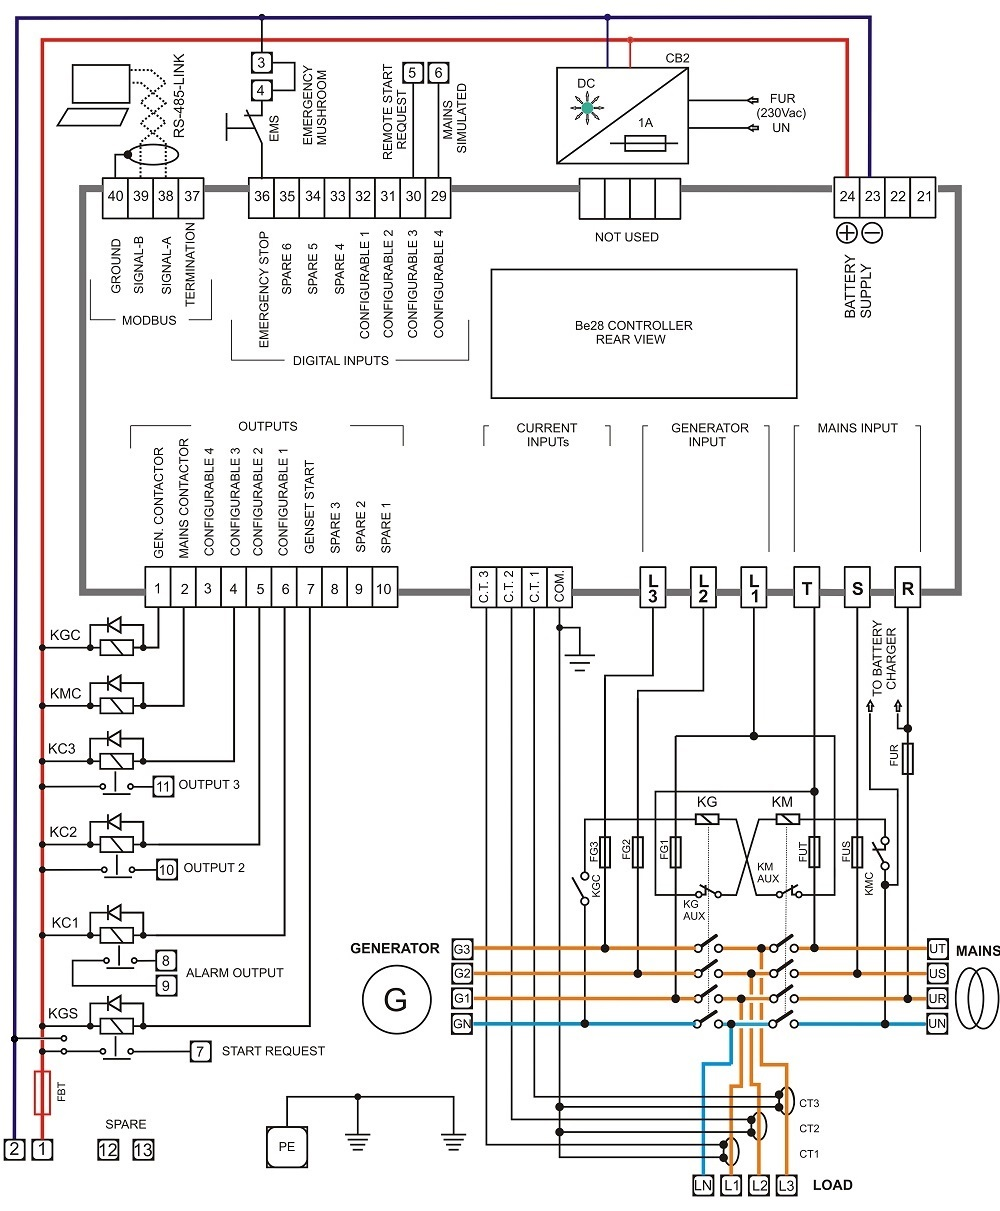 Ats Panel Genset Controller Transfer Switch For Generator View Automatic 60kva Wiring Diagram